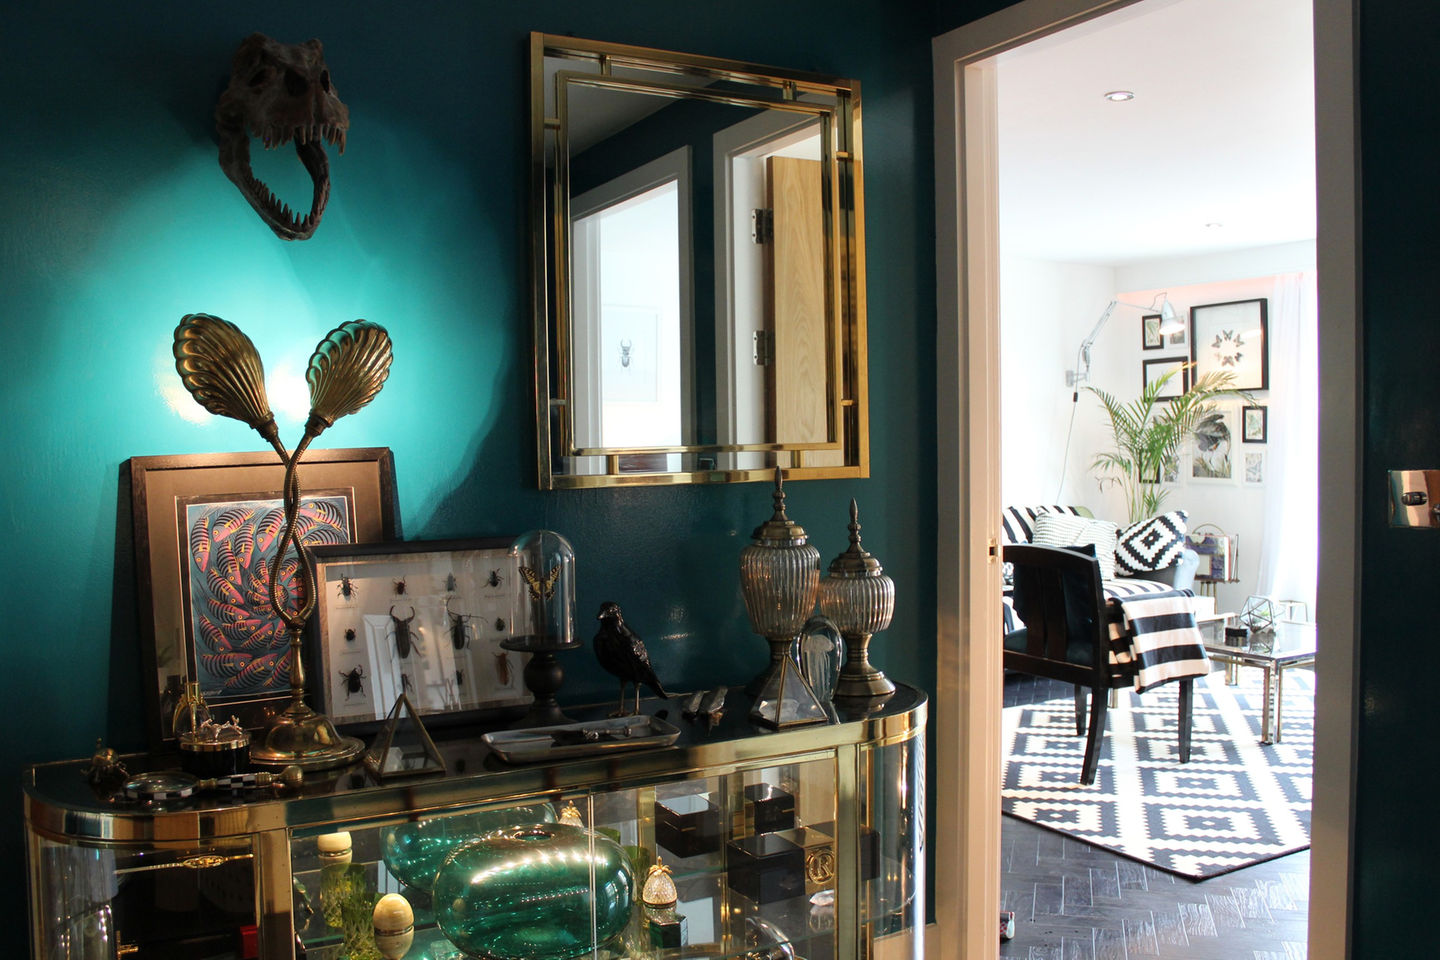 8 reasons I love The Curious Apartment — The Pink House